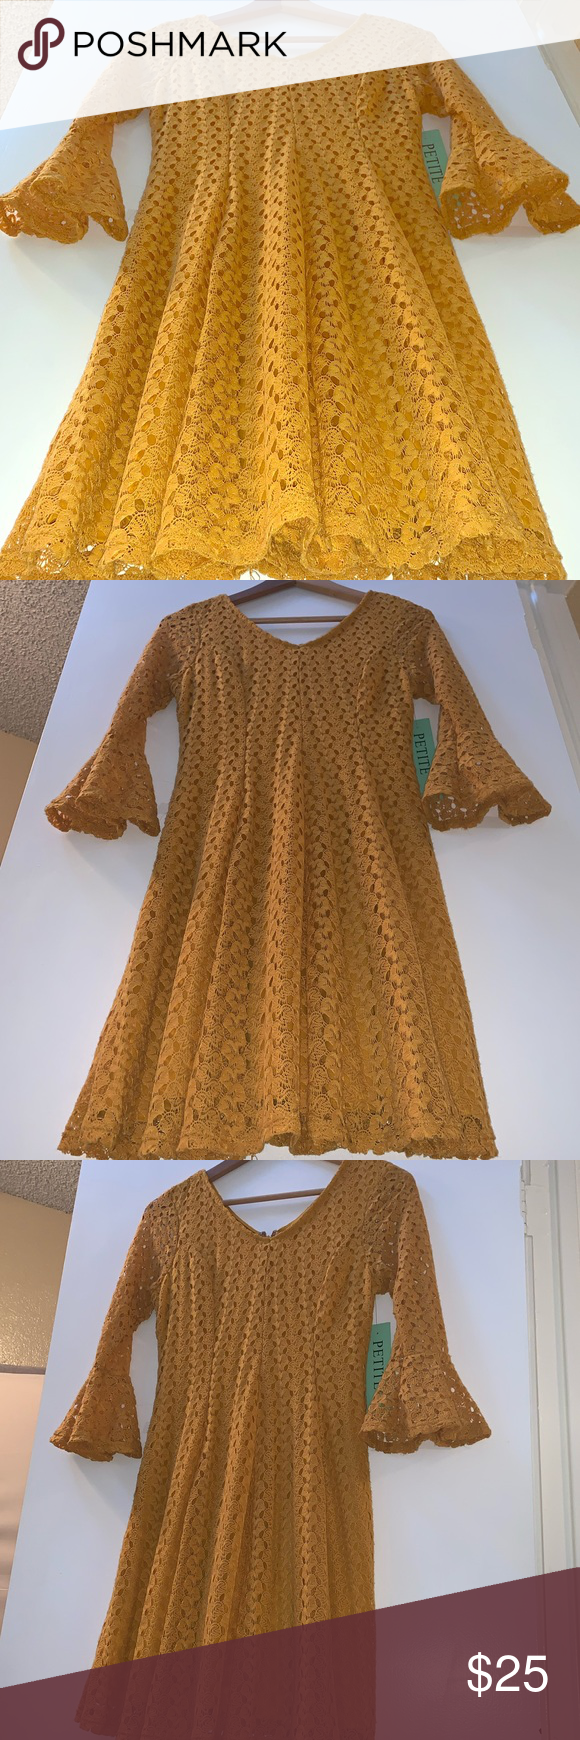 Photo of Mustard Gold Yellow Boho Lace Bell Sleeve Dress Size Petite Small Lace Detail Go…